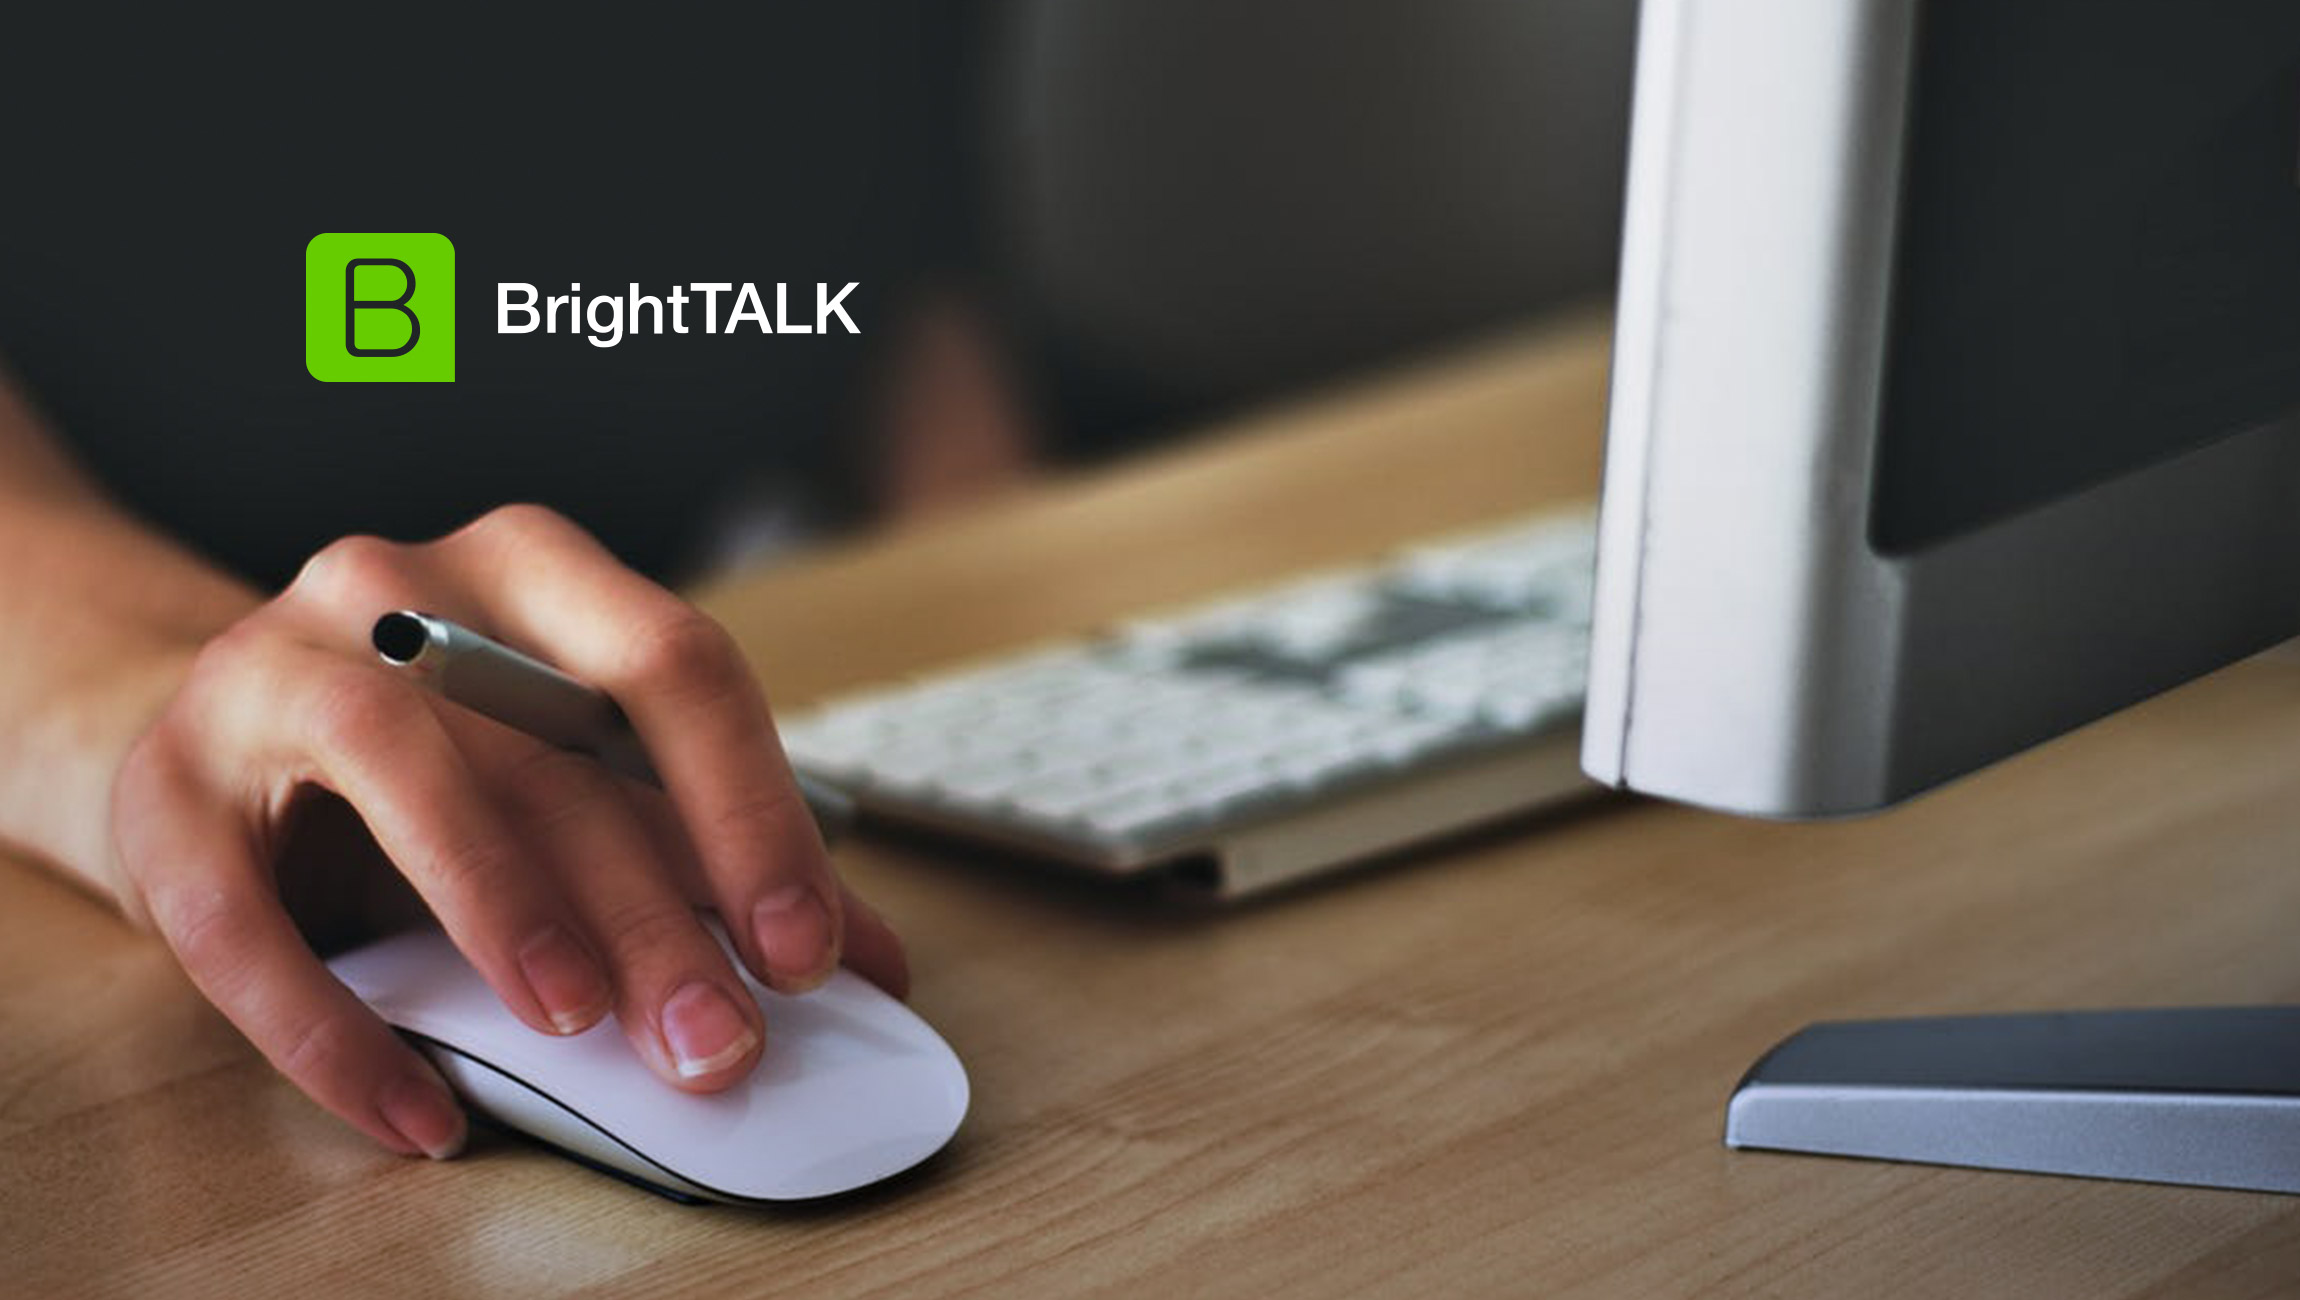 BrightTALK Introduces New Insights Feature To Help B2B Marketers Analyze Prospects' Buying Intent